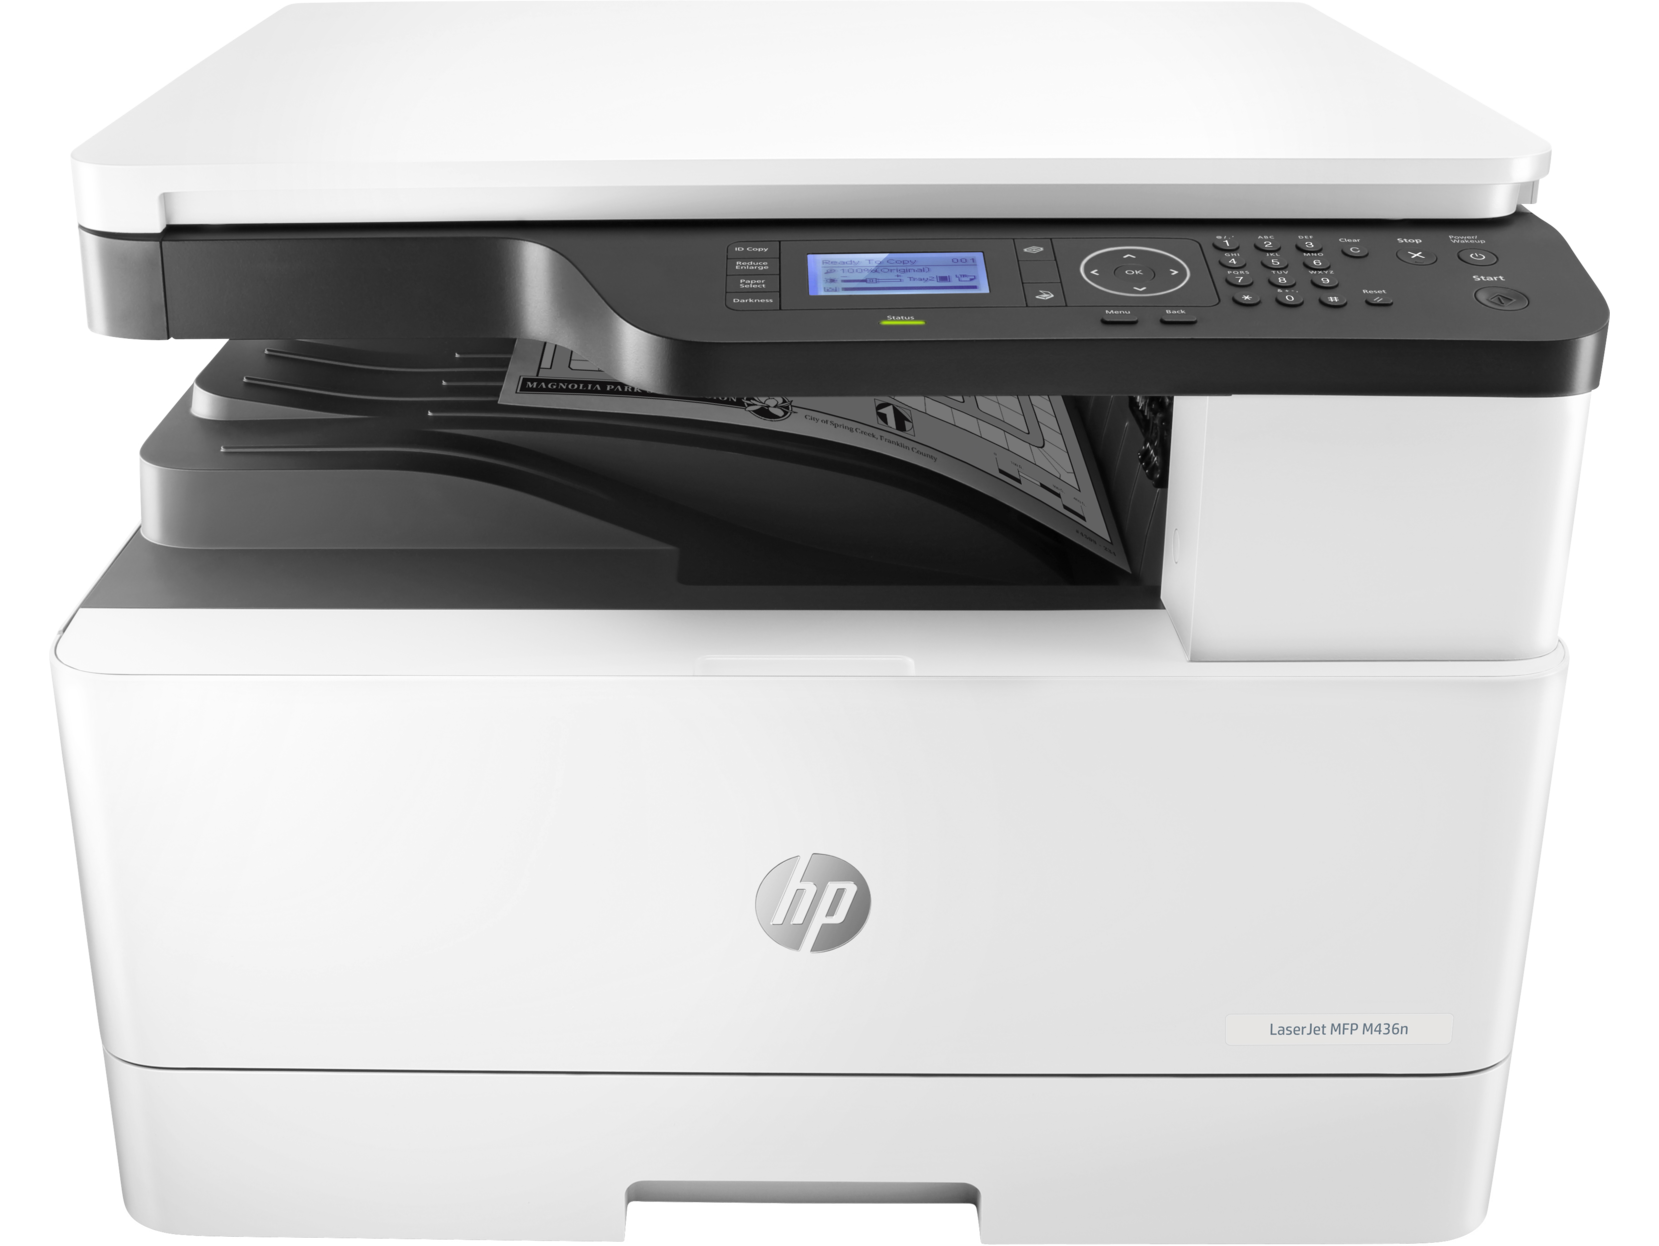 HP LaserJet MFP M436n Printer (W7U01A)